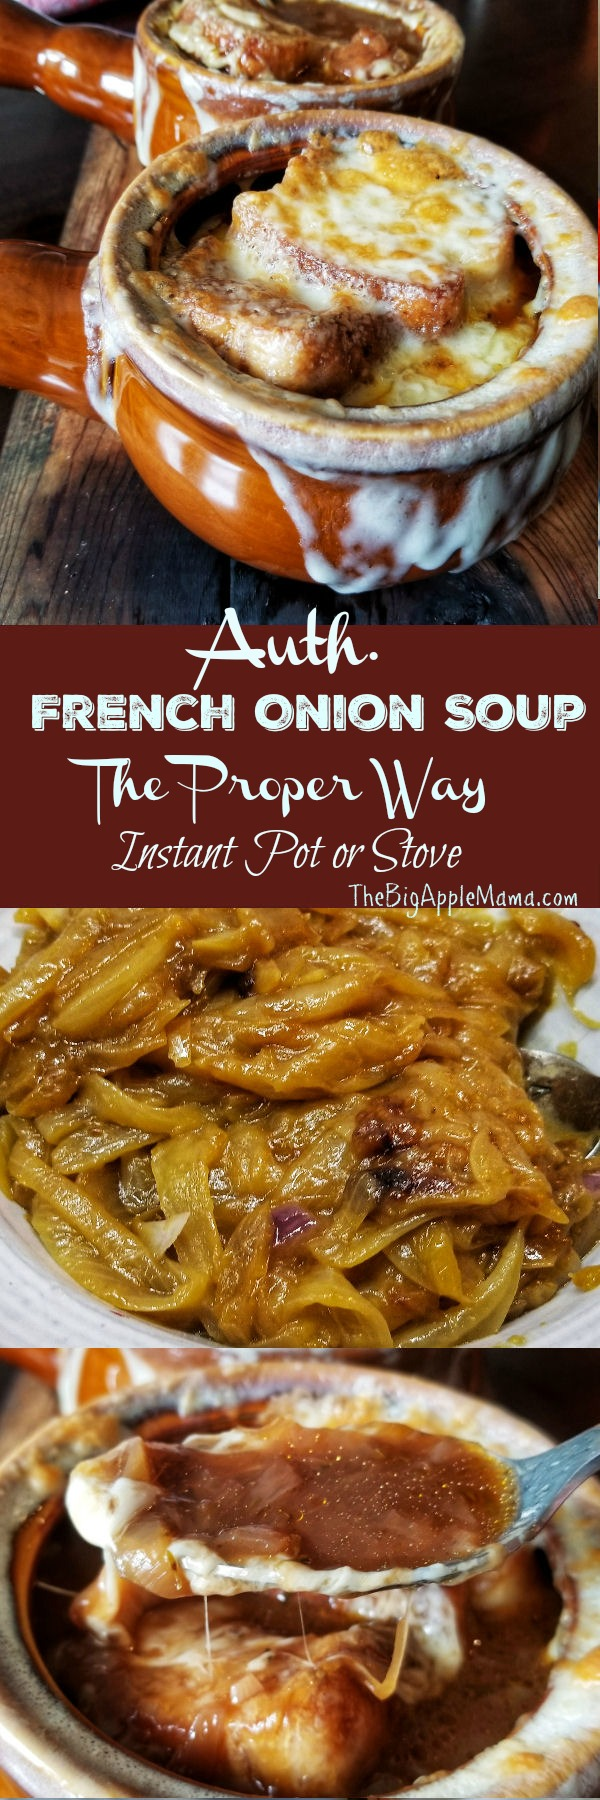 The Best French Onion Soup, Instant Pot or Stove top